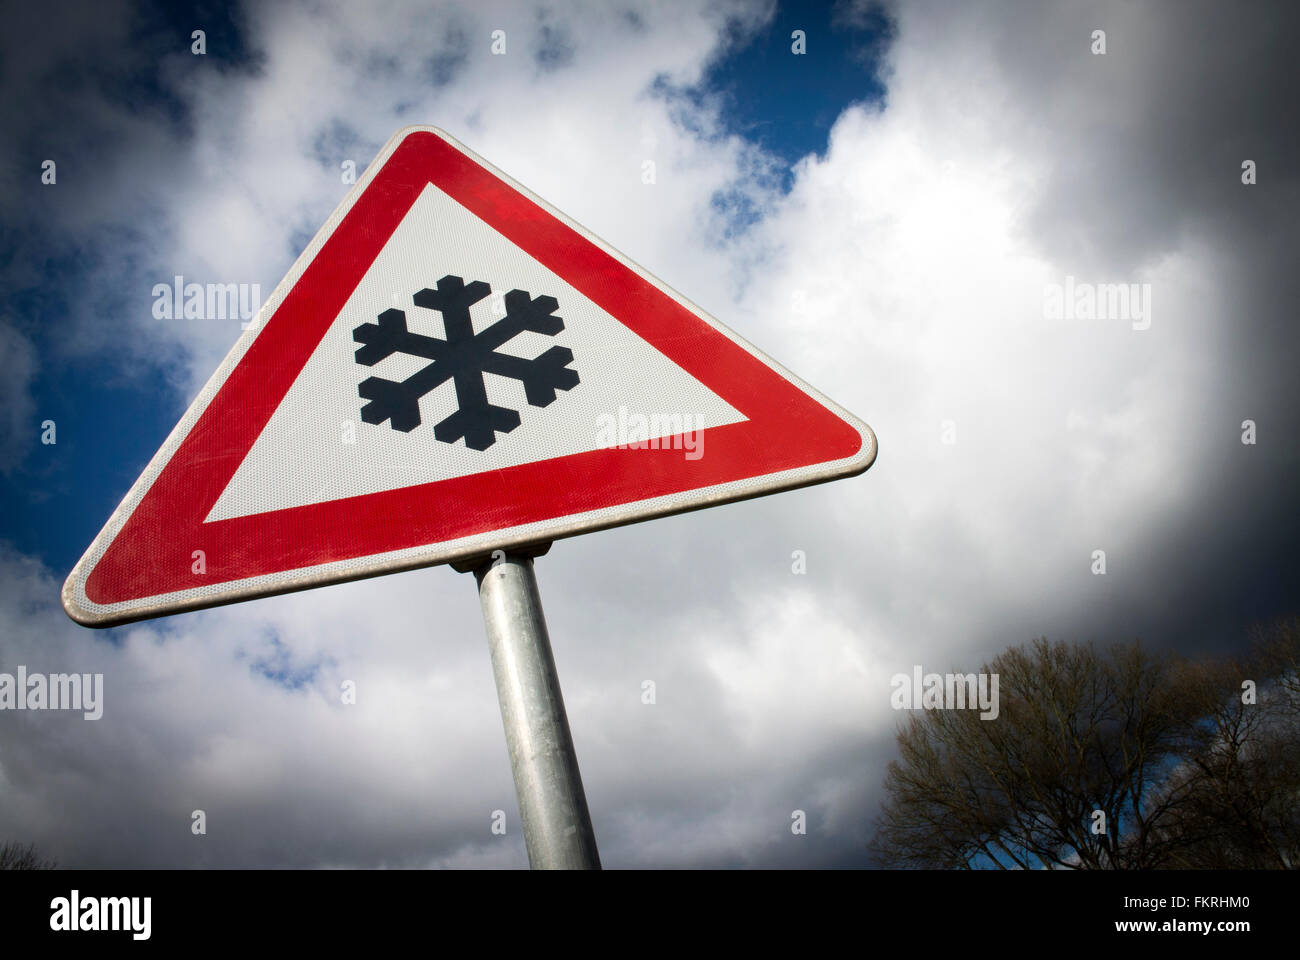 Warning of frost on the road. - Stock Image